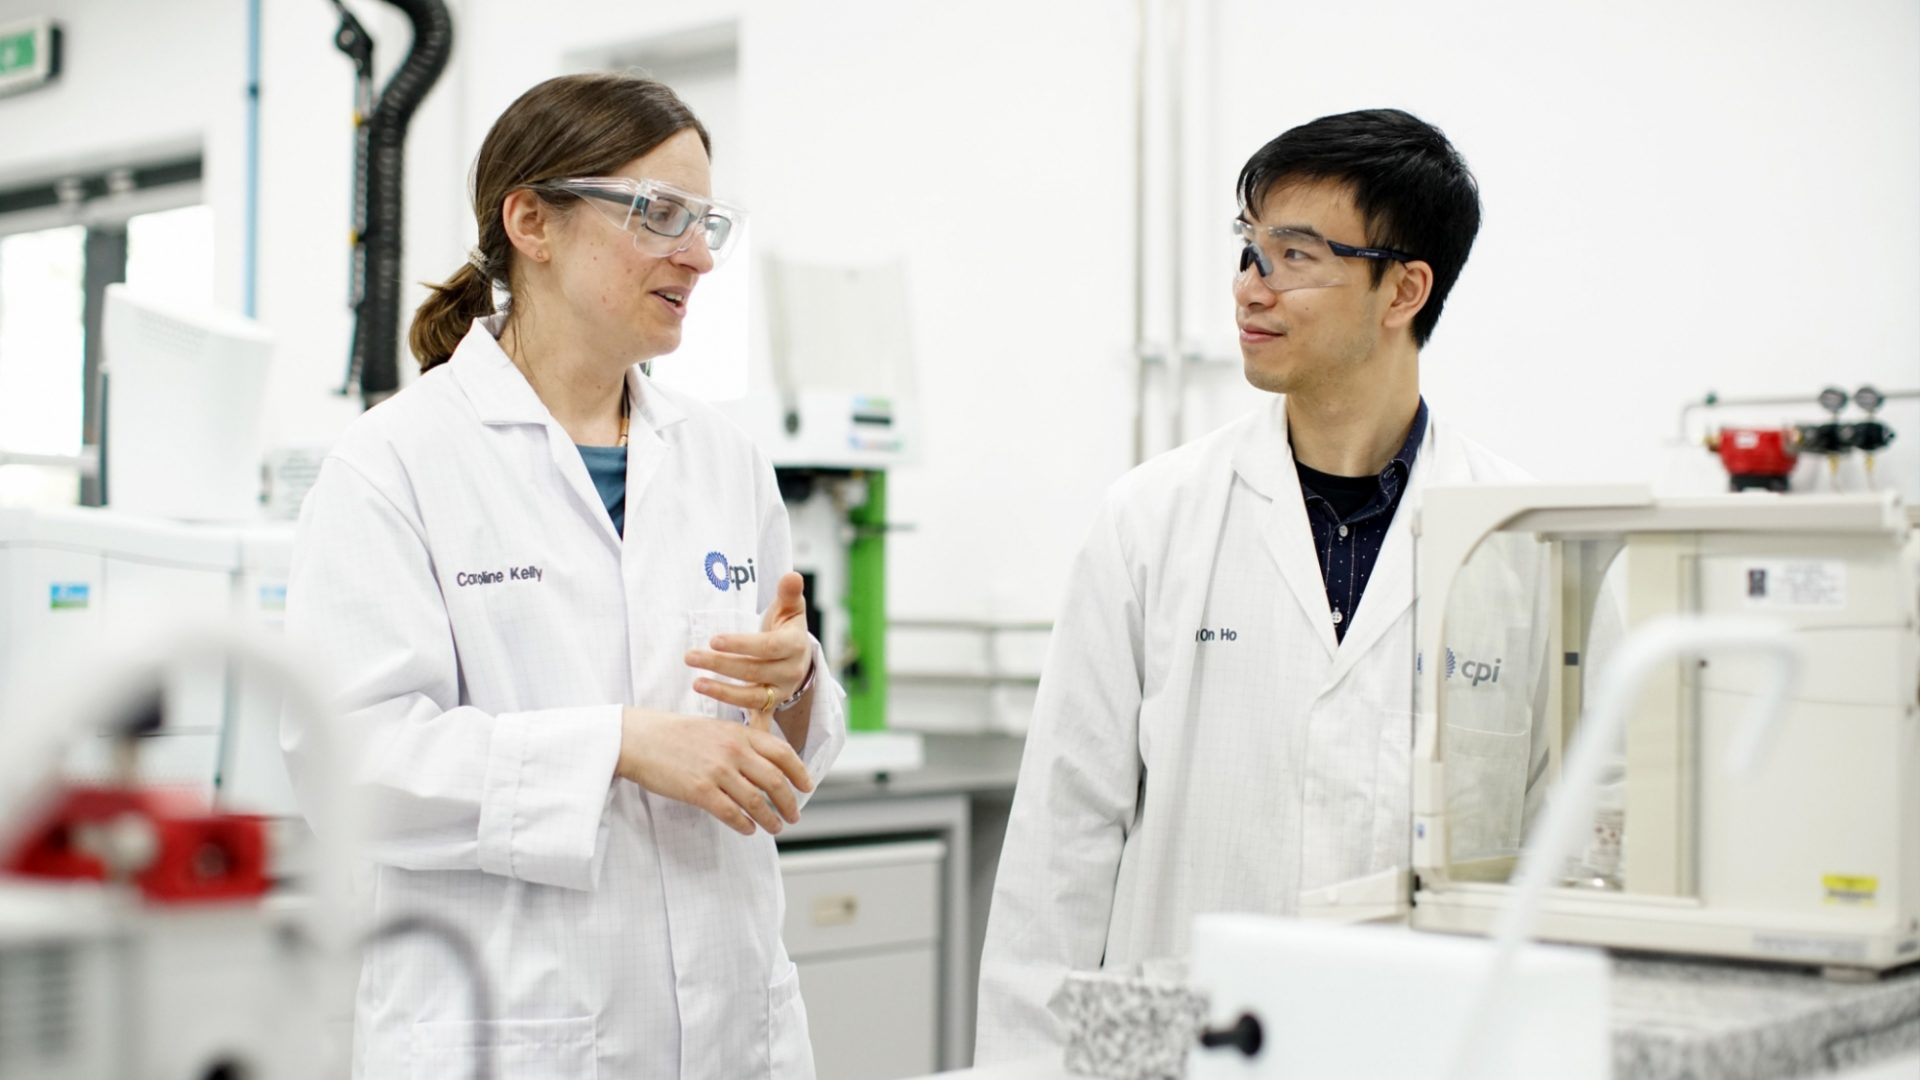 A photo of two CPI staff members having a discussion in a laboratory